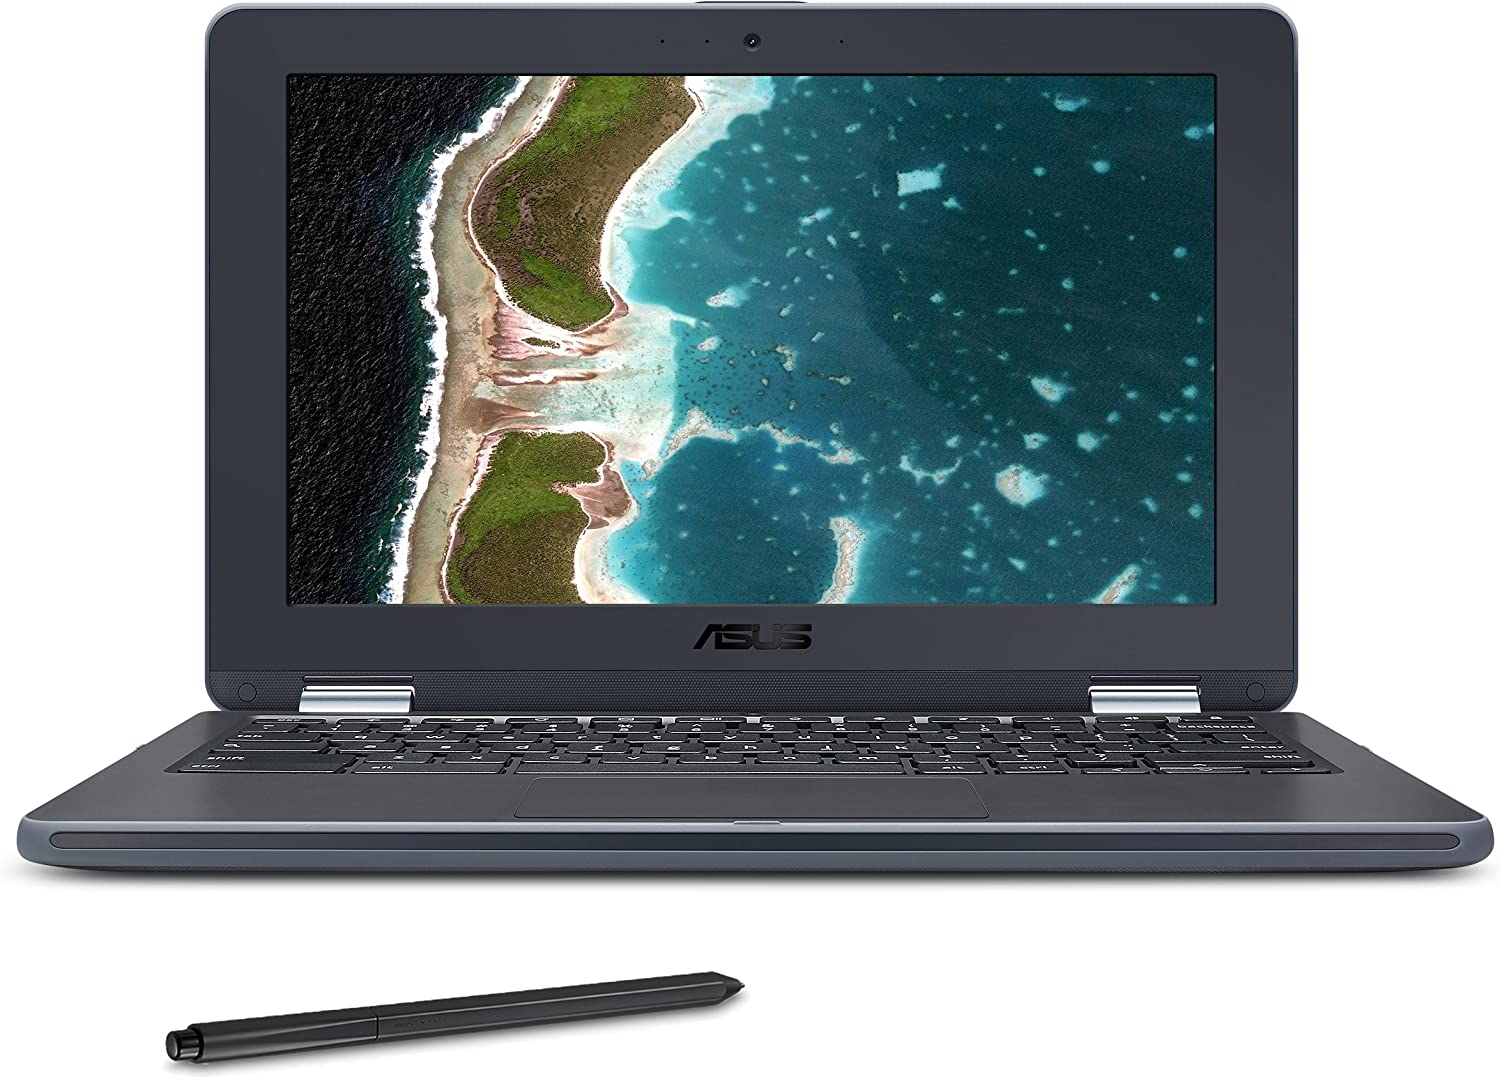 ASUS Chromebook Flip C213SA-YS02-S with Stylus EMR Pen, 11.6 inch Ruggedized & Spill Proof, Touchscreen, Intel Dual-Core N3350, 4GB DDR4 RAM, 32GB Flash Storage, USB Type-C, Supports Android Apps